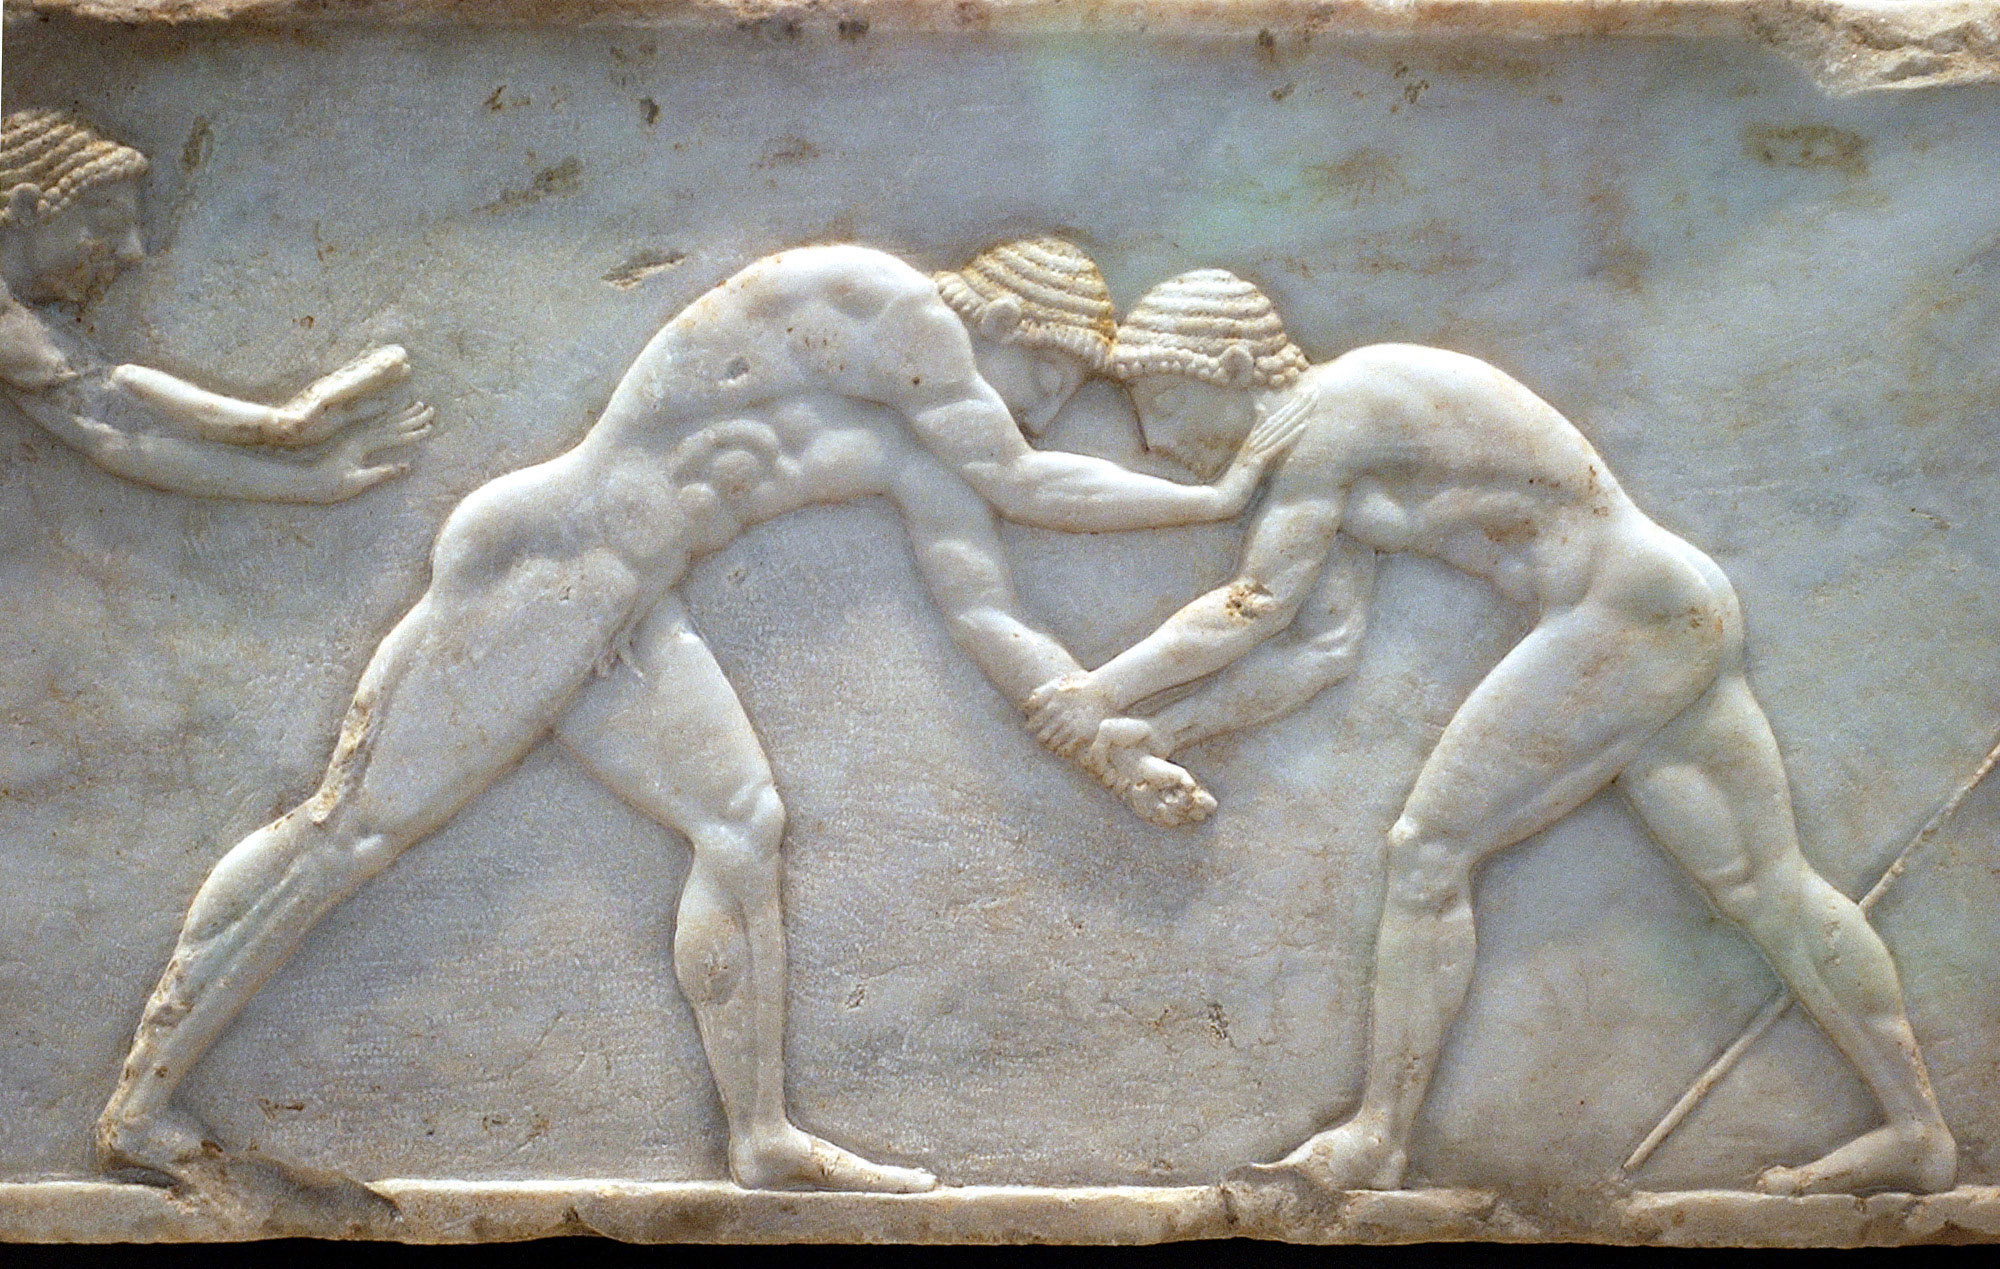 A marble sculpture of ancient Greek wrestlers from 510 BC is part of an exhibition at the National Archaeological Museum in Athens, July 15, 2004.